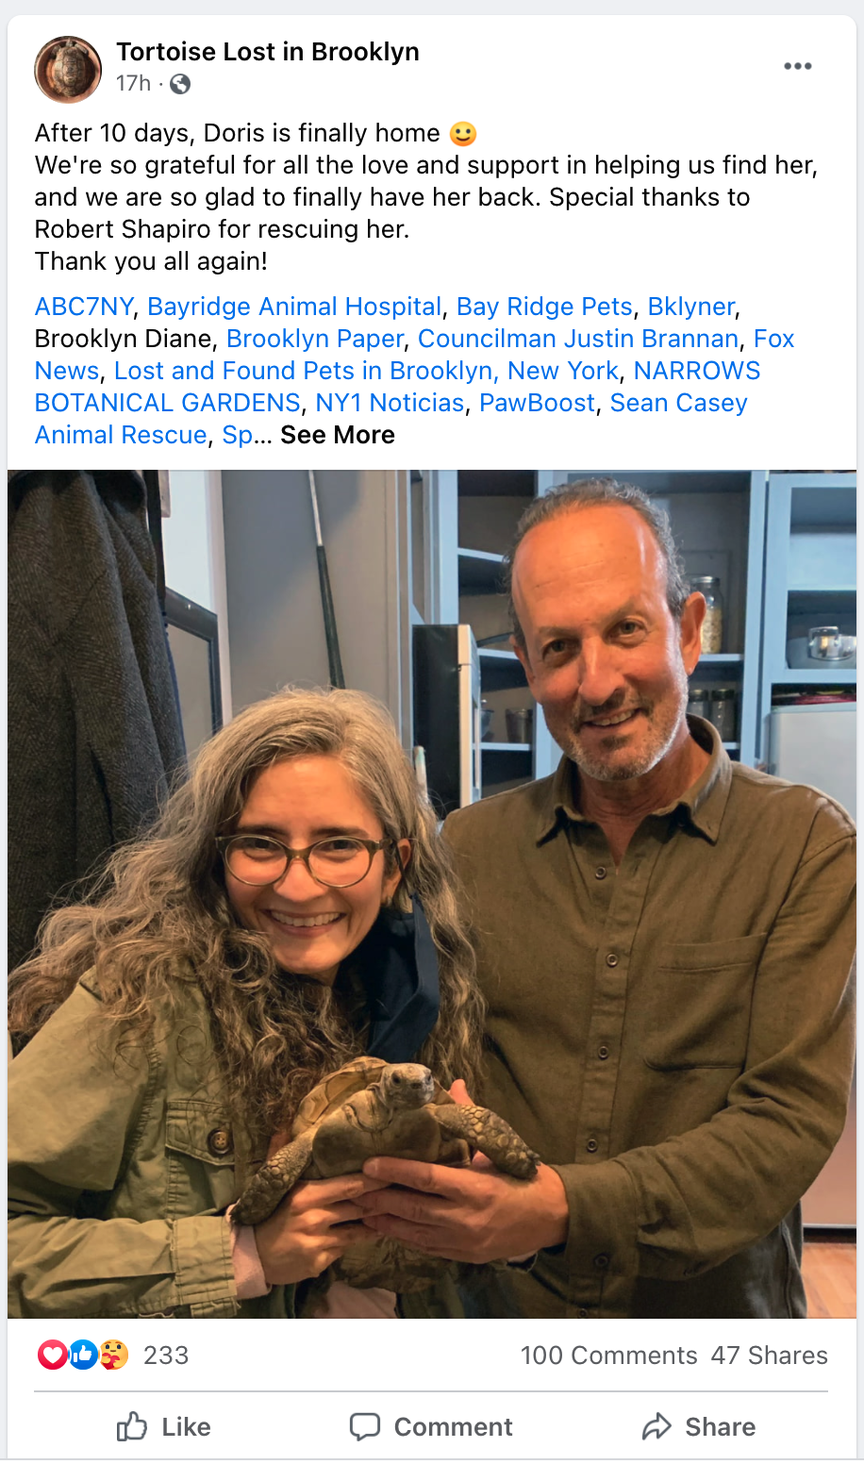 A Facebook post featuring a photo of a couple holding their pet turtle.